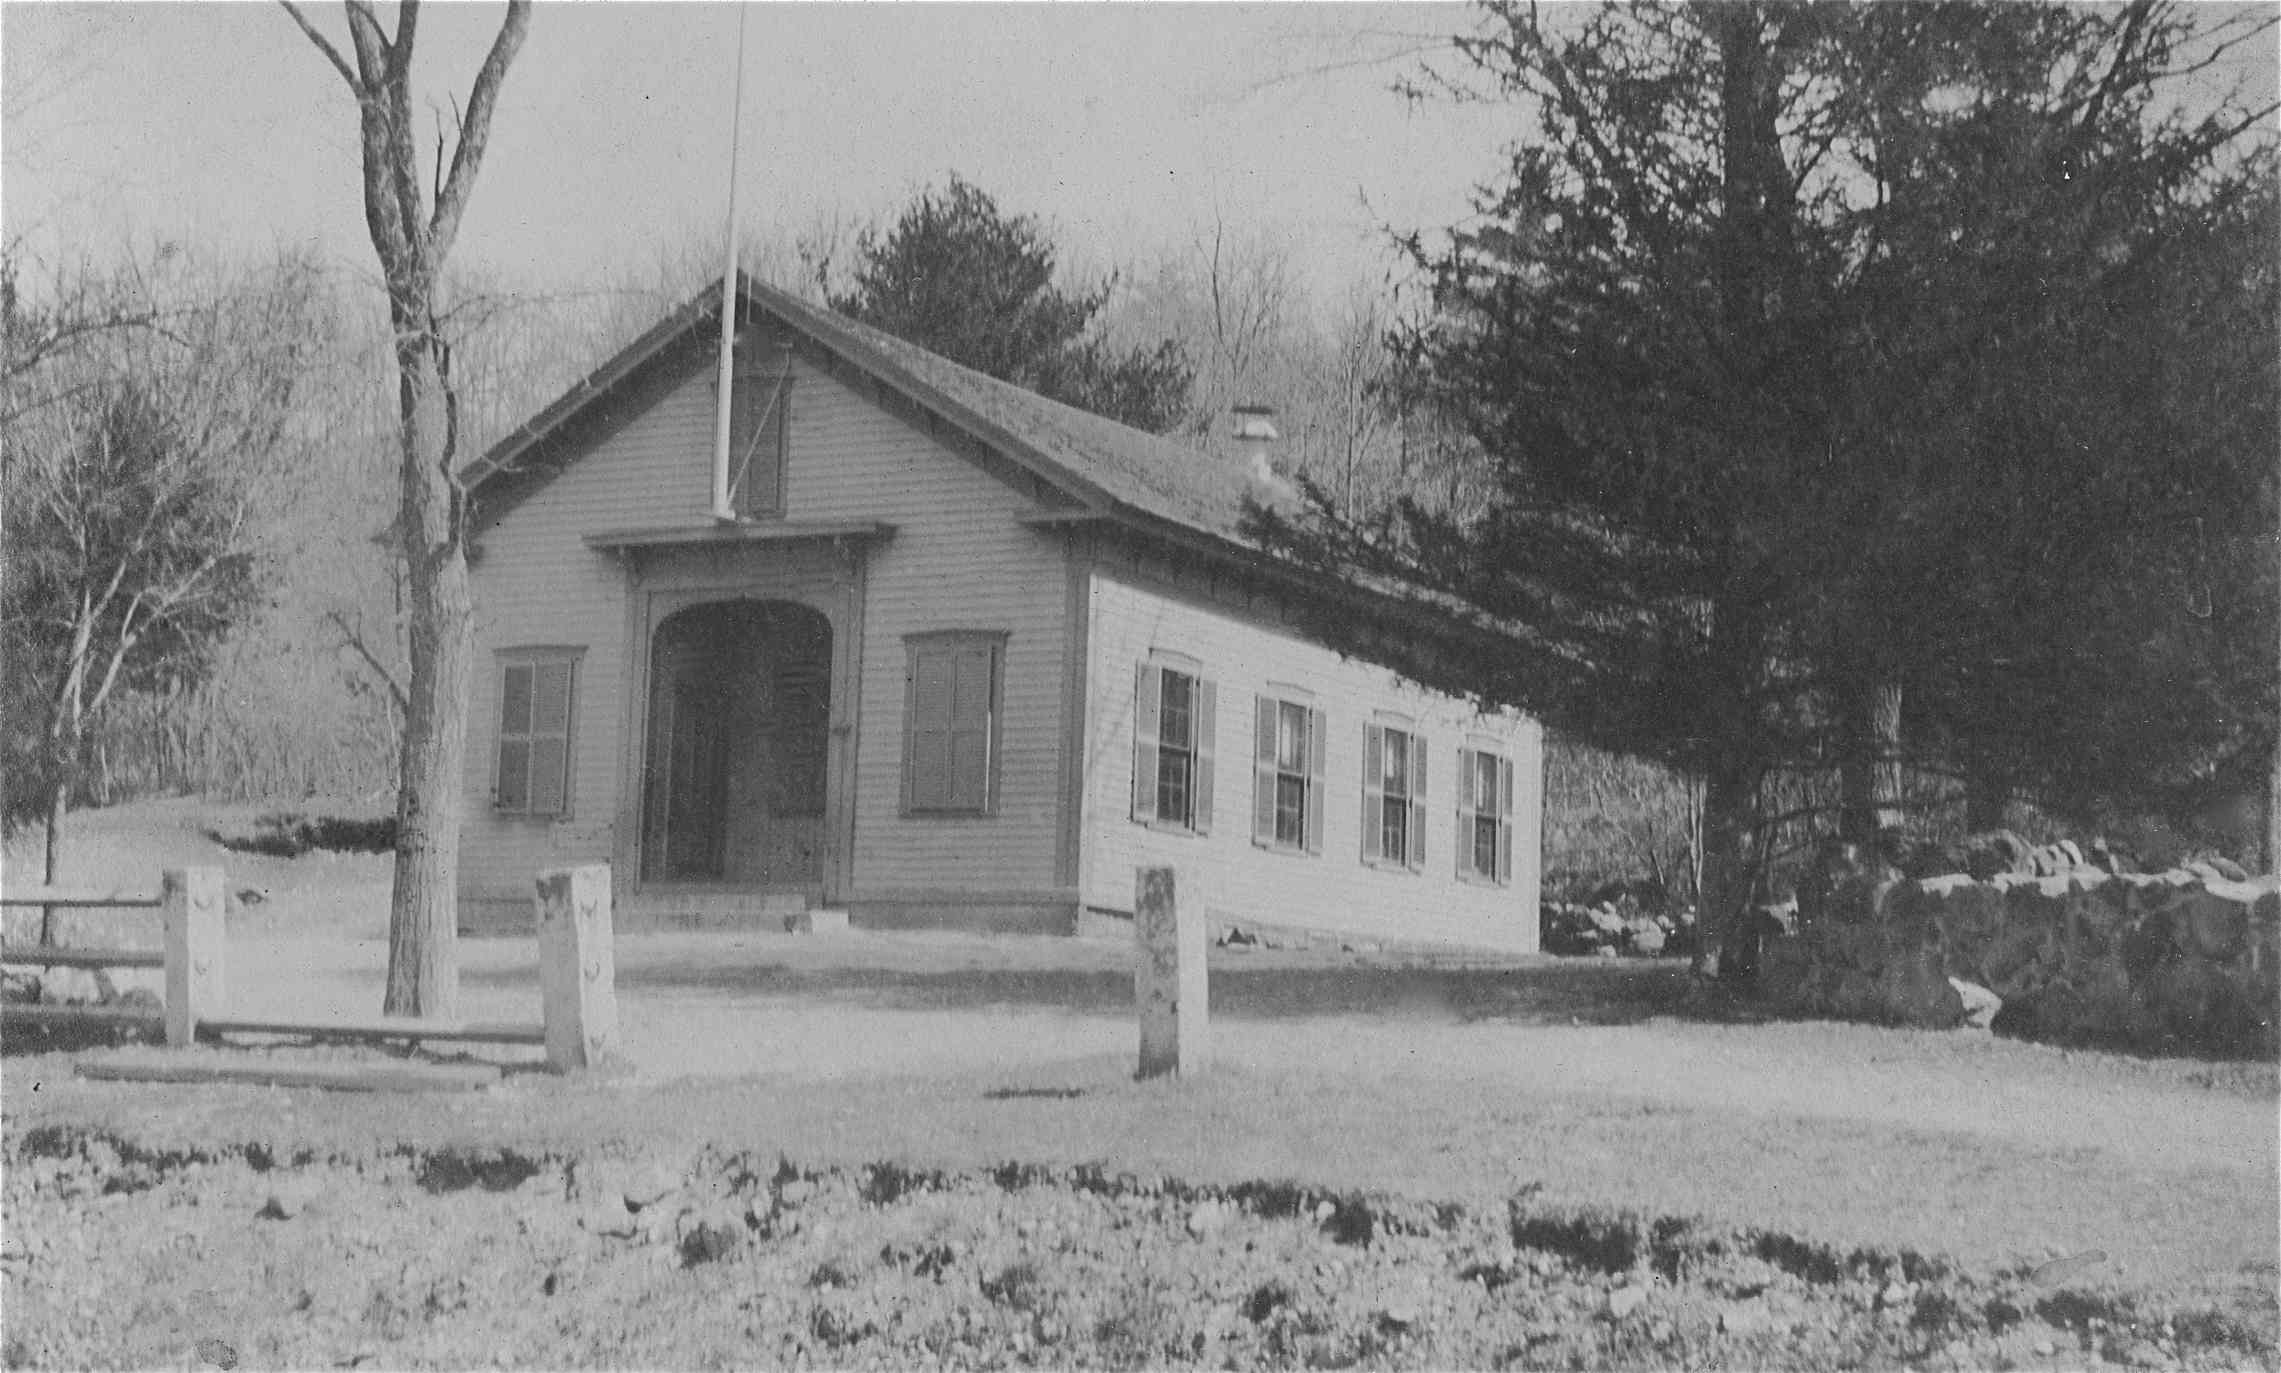 District School #4 on North Avenue was the last of Weston's 6 district schools